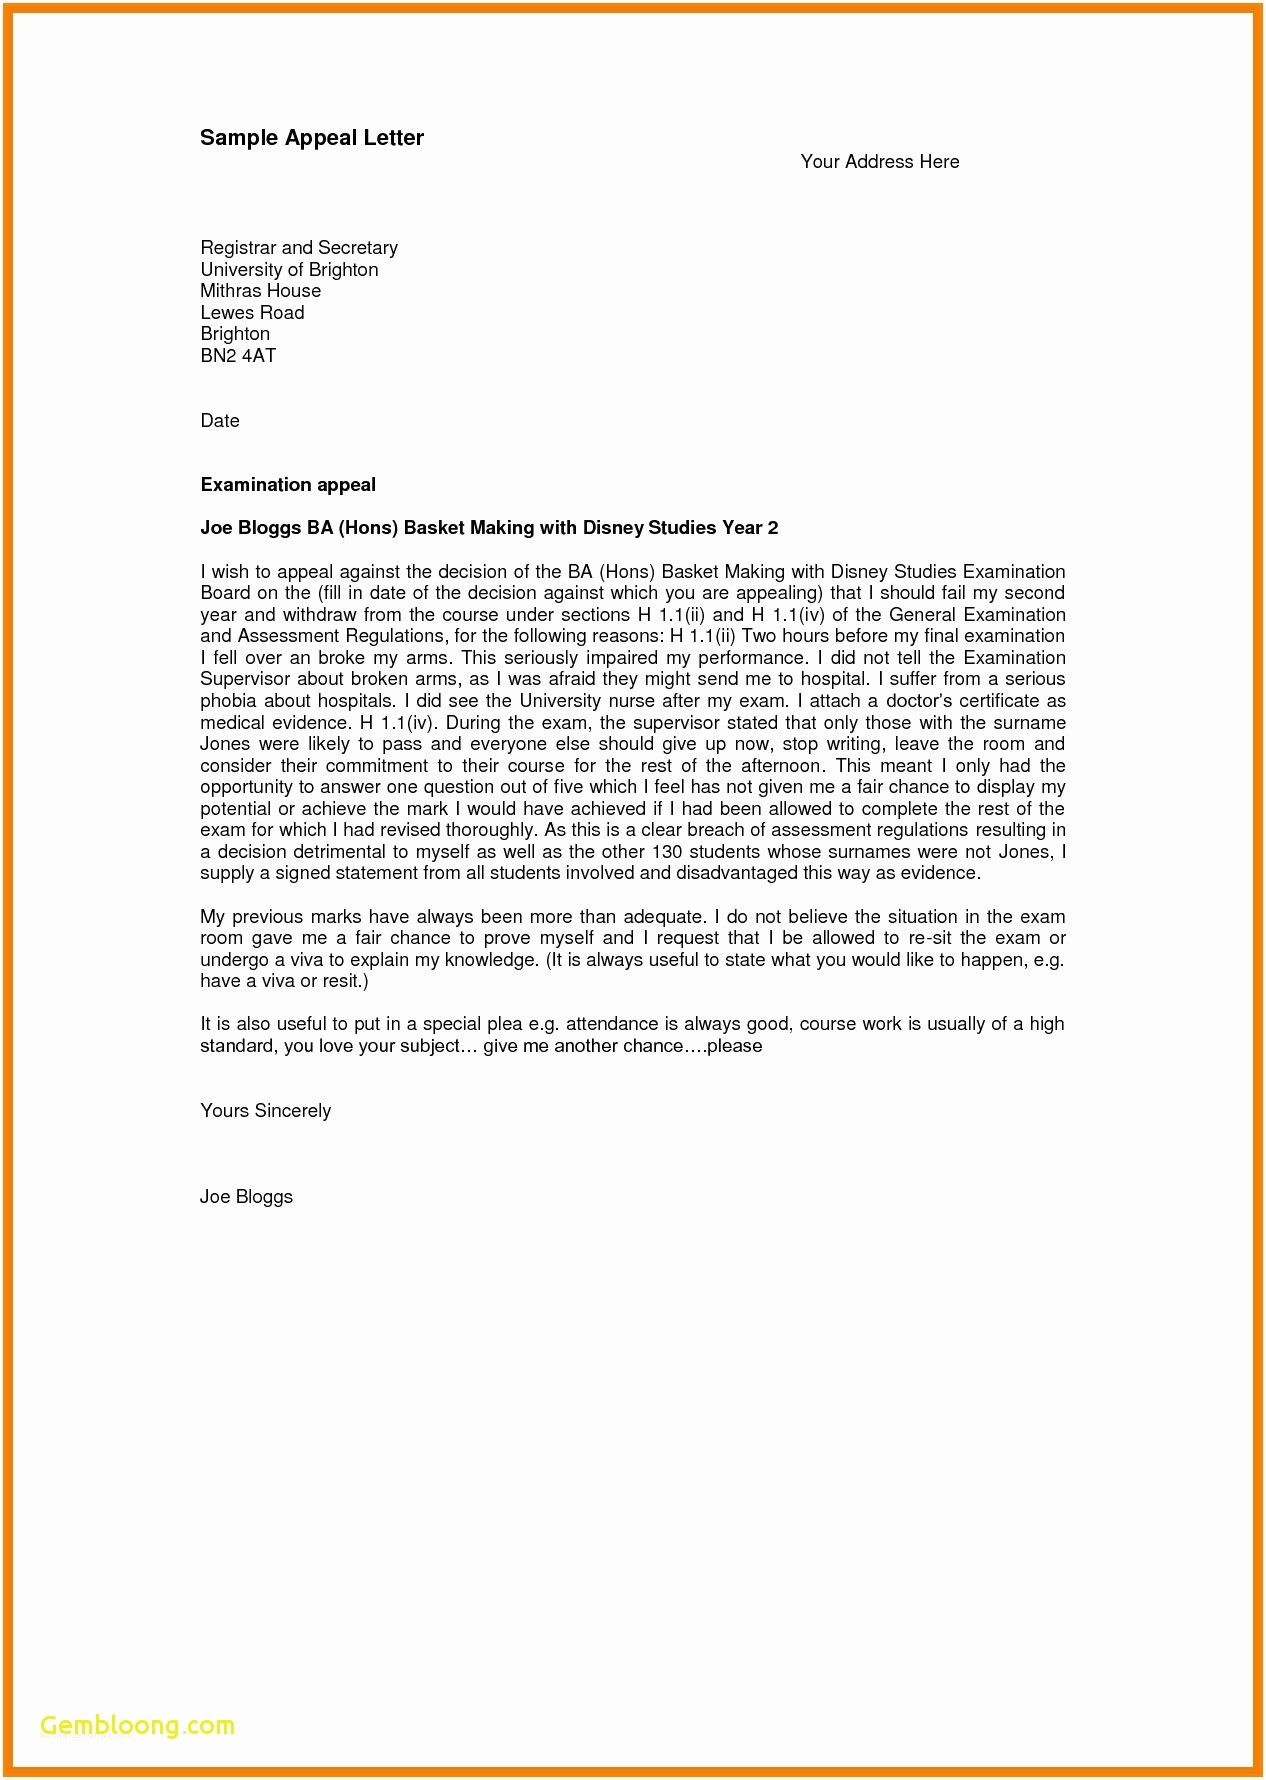 Valid Sap Appeal Letter Sample Download Https Letterbuis Com Valid Sap Appeal Letter Sample Download Donation Letter Persuasive Letter Lettering